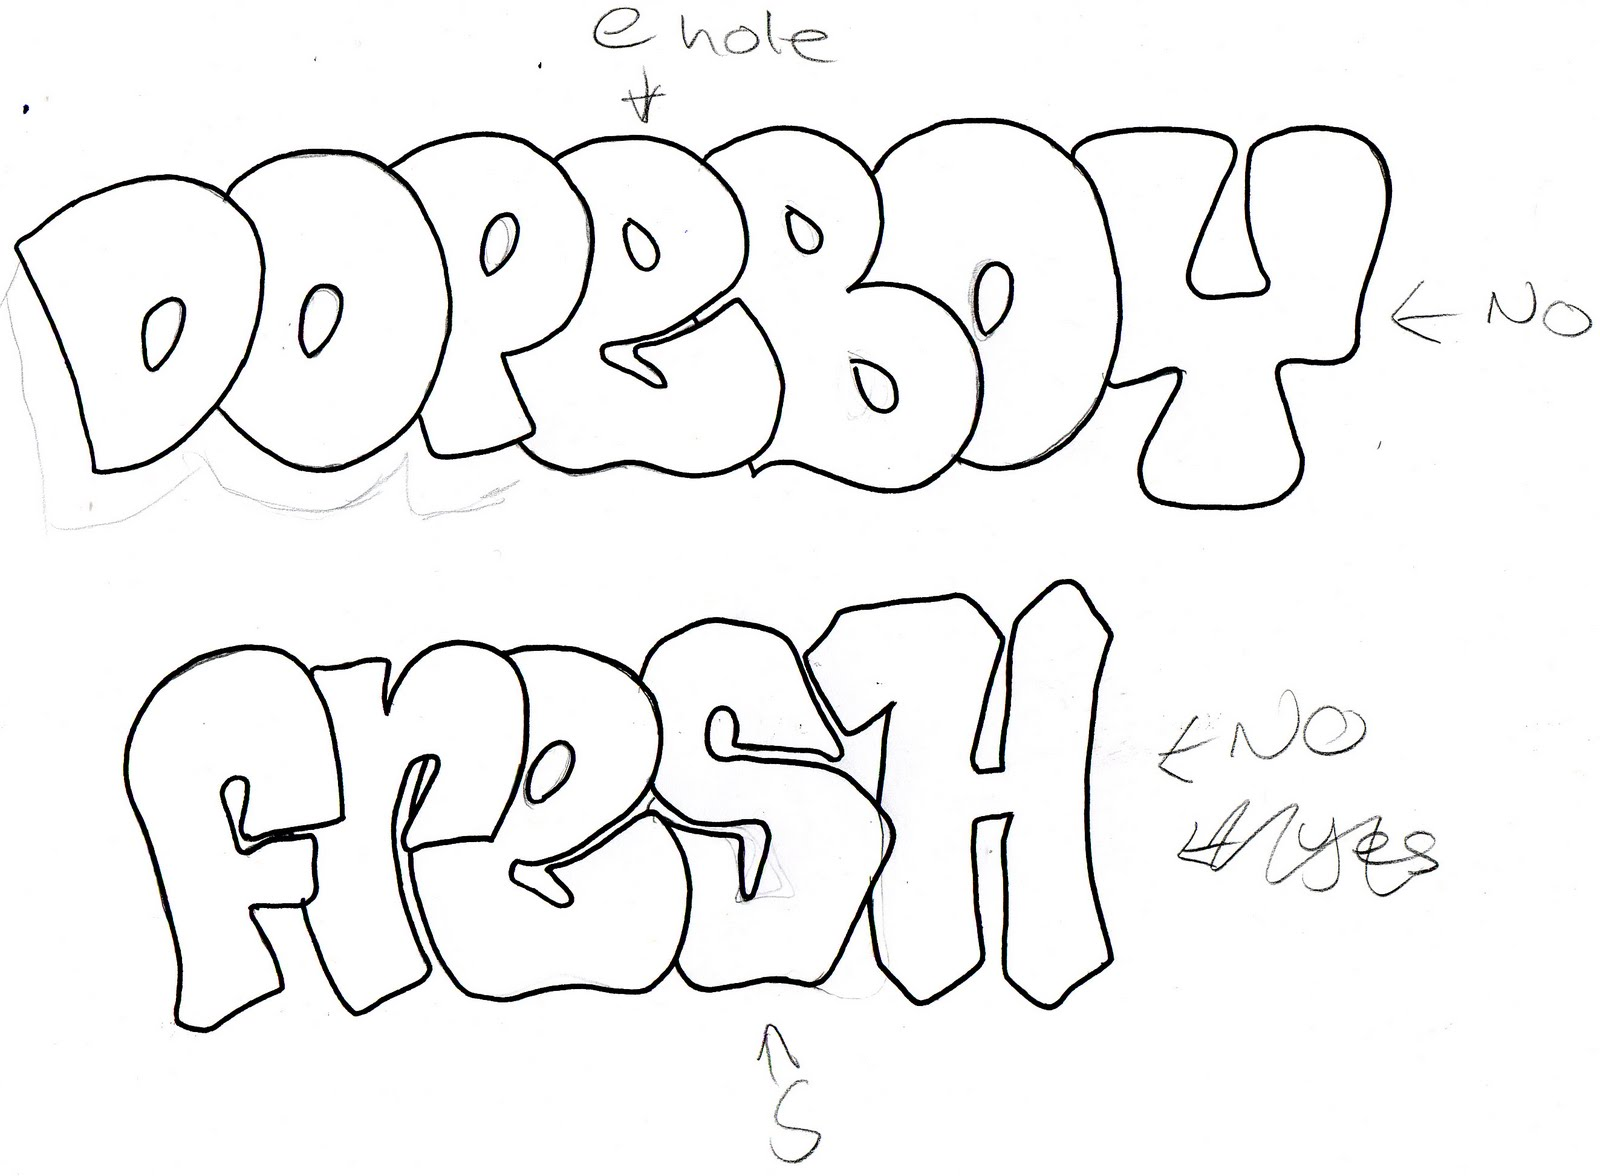 Dope Graffiti Coloring Pages Coloring